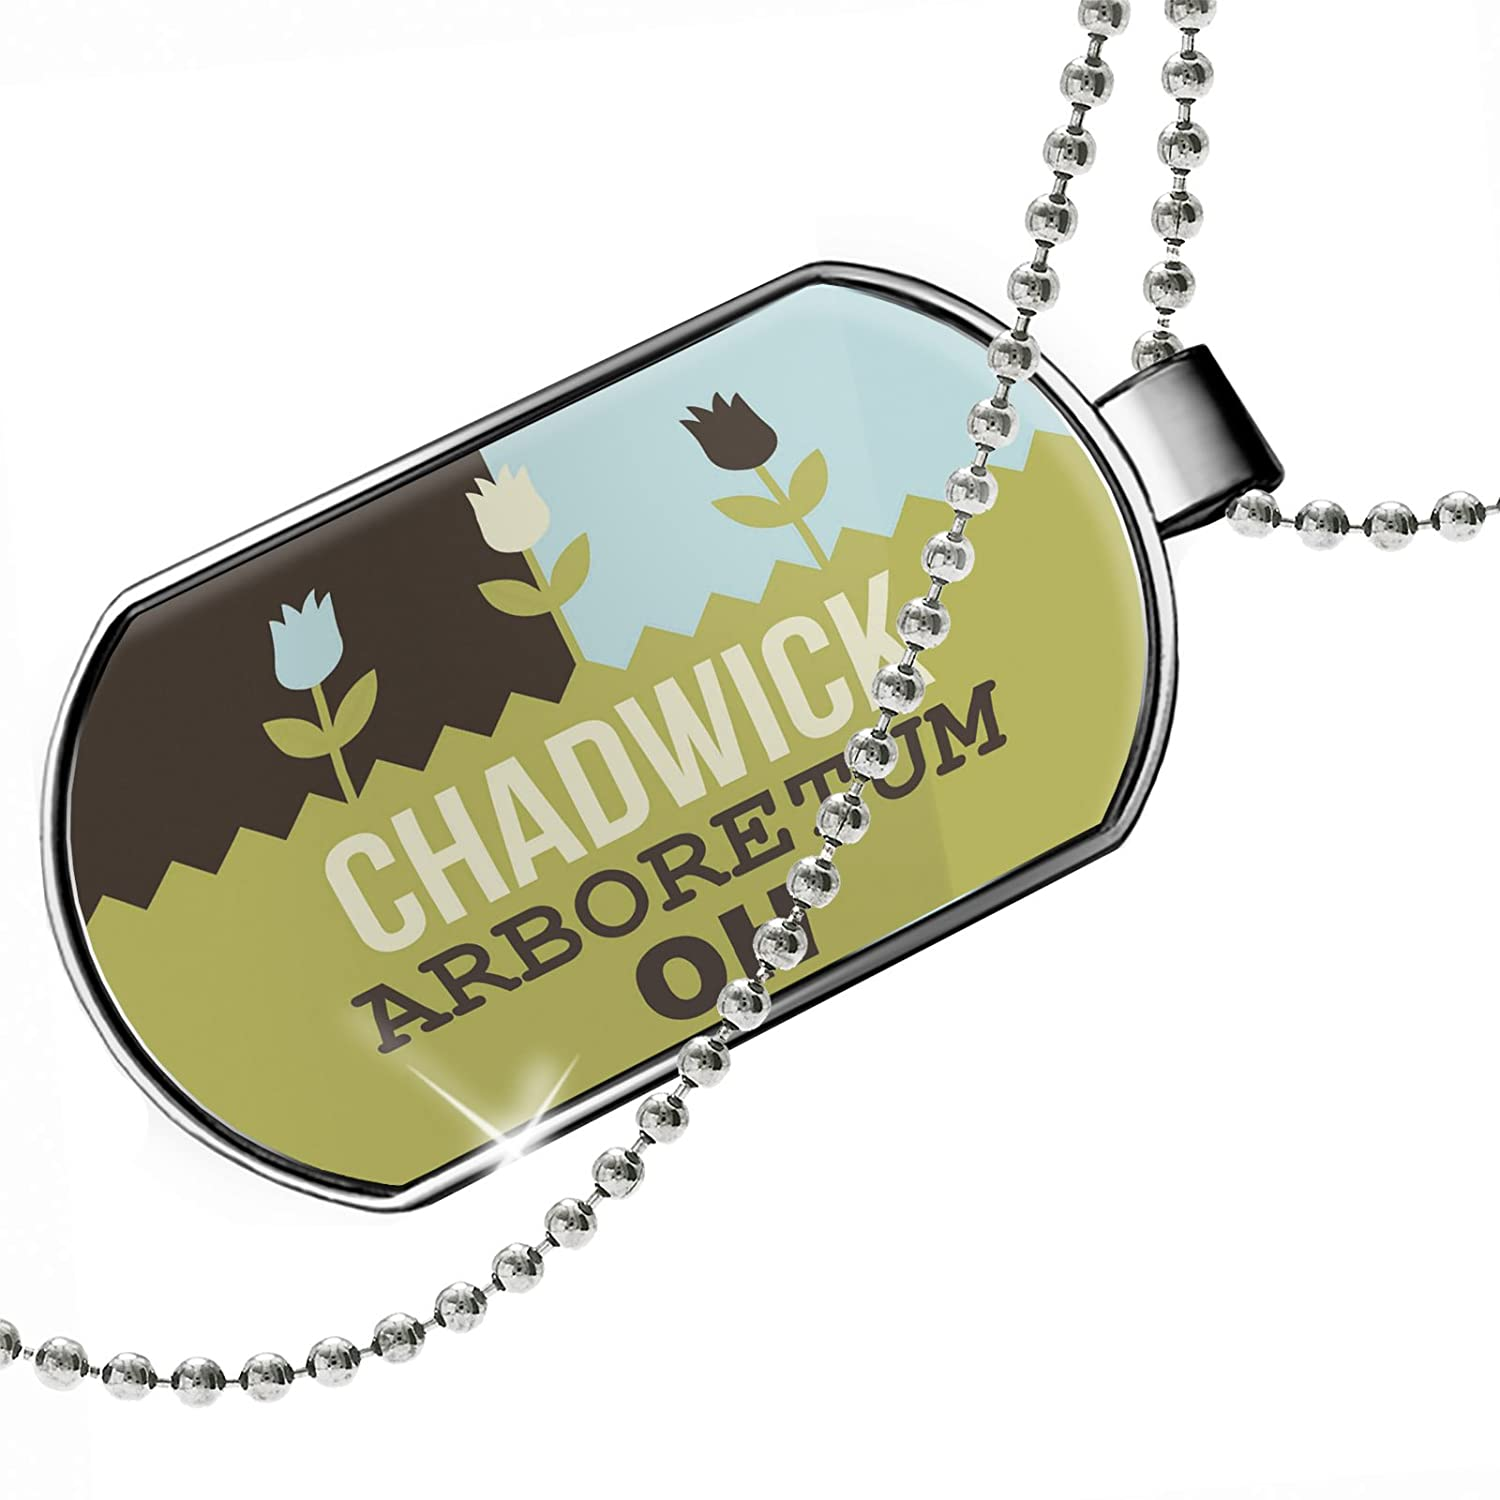 OH Dogtag Necklace NEONBLOND Personalized Name Engraved US Gardens Chadwick Arboretum